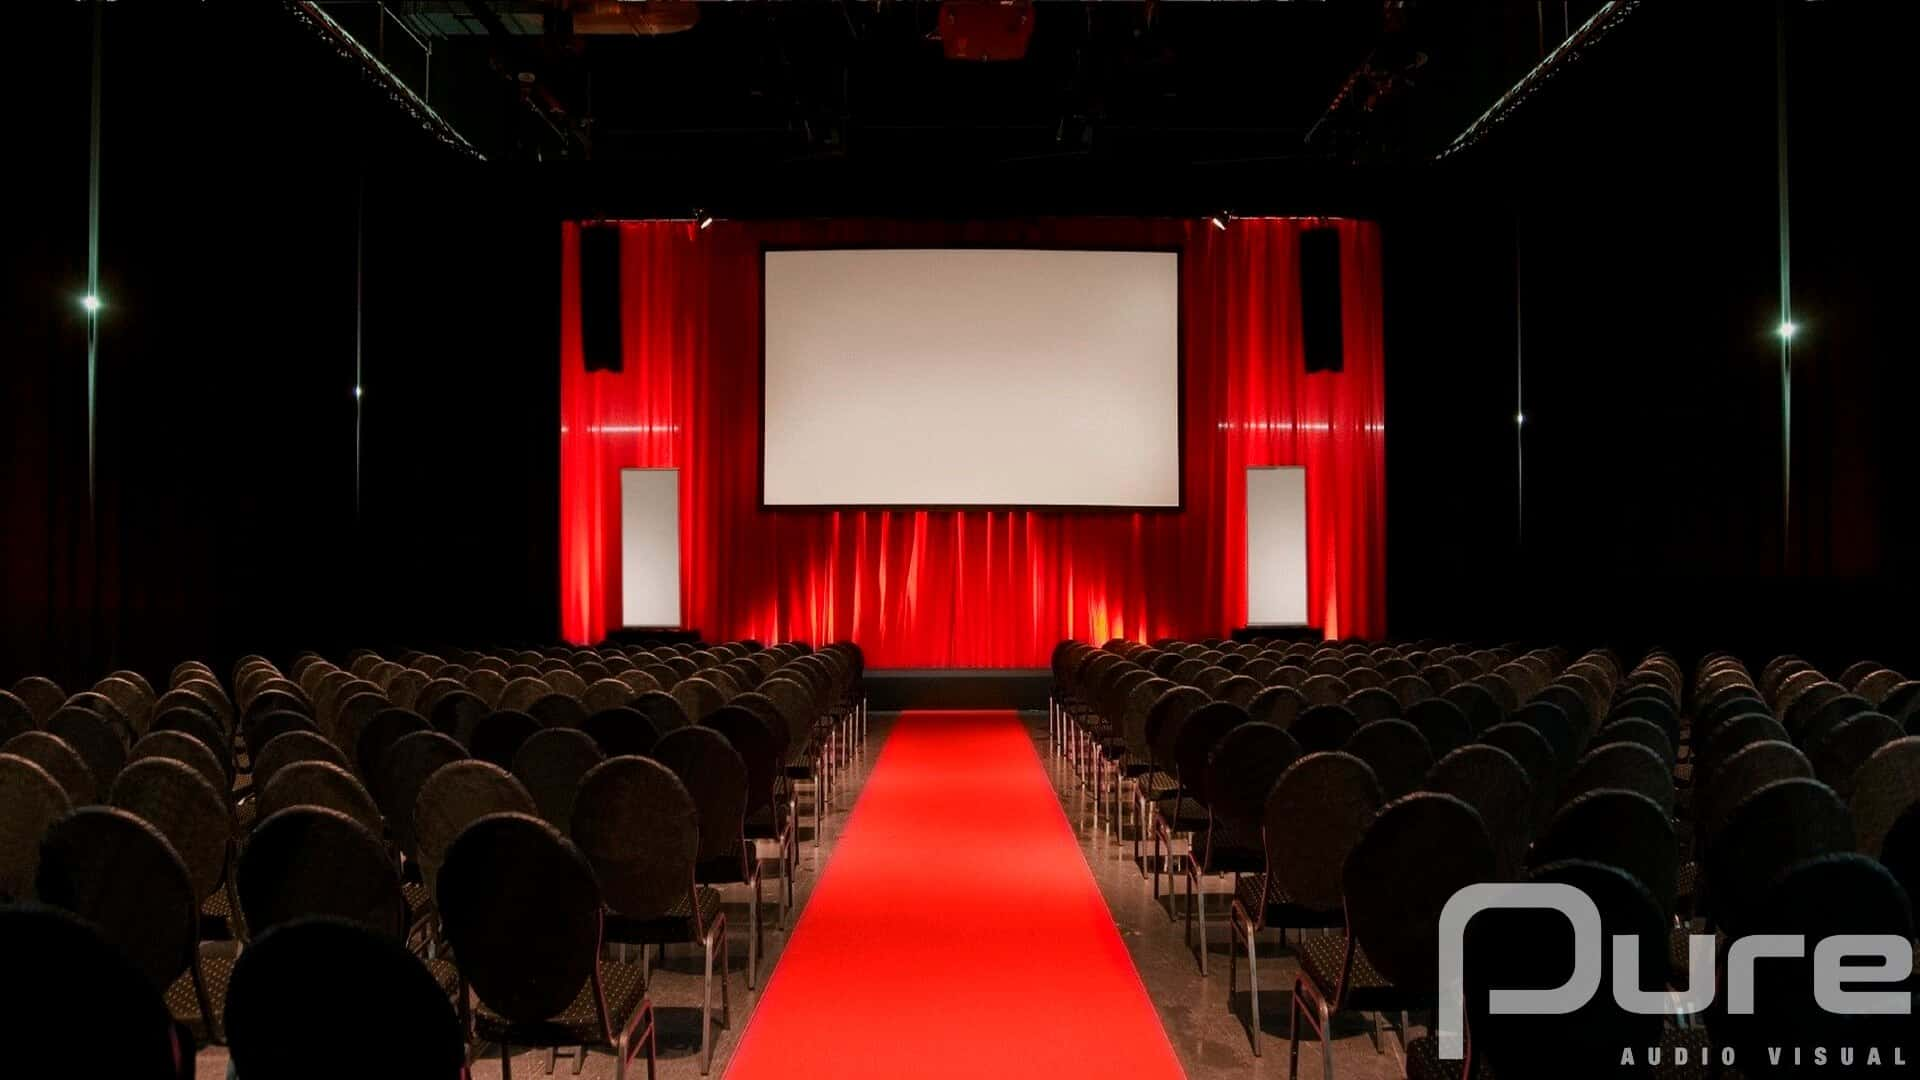 Projector, Projector Screen, Line Array, Drape. AV Company, Audio Visual Production